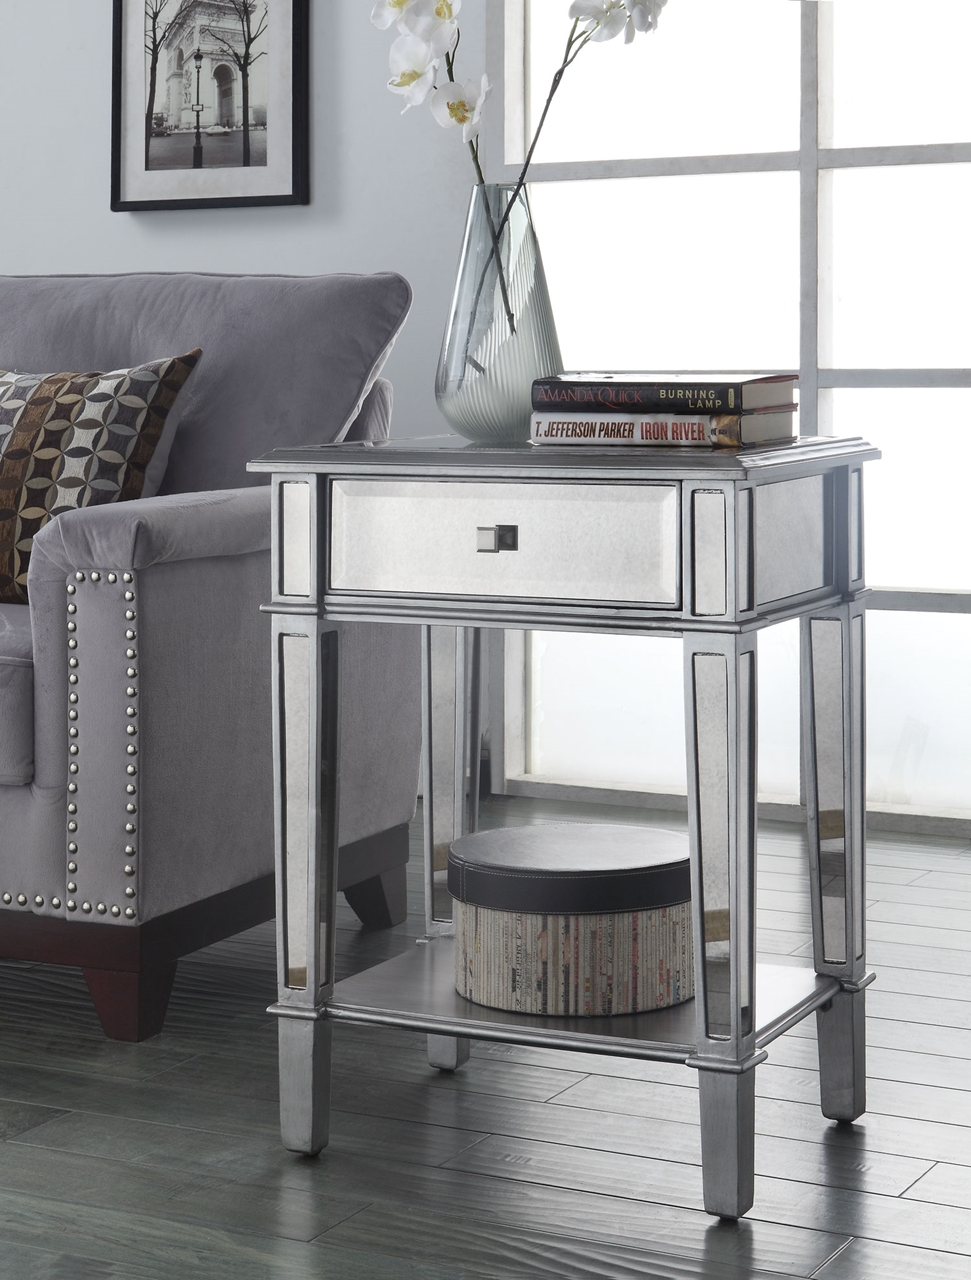 target side table with drawer fantastic inexpensive coffee tables just arrived mirrored living room furniture stand ideas small accent full size chests and cabinets ashley